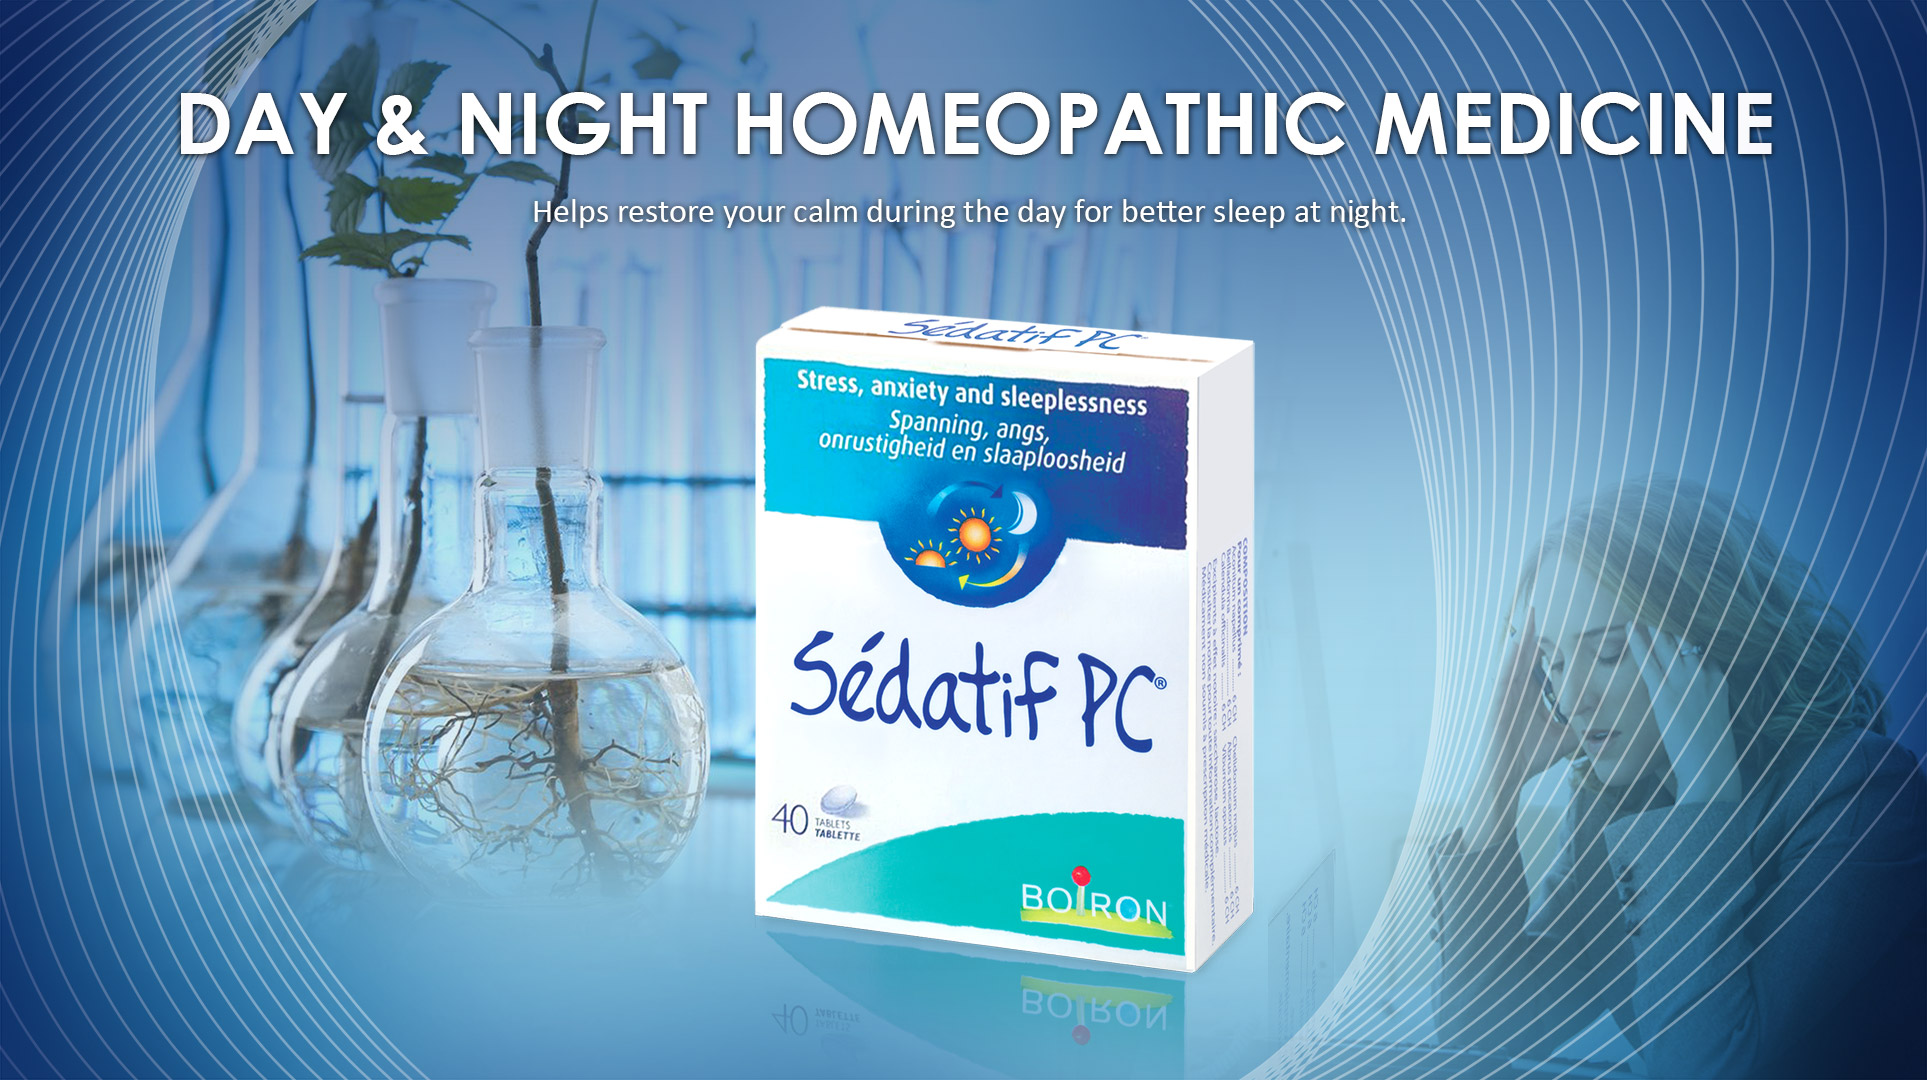 Day and Night Homeopathic Medicine